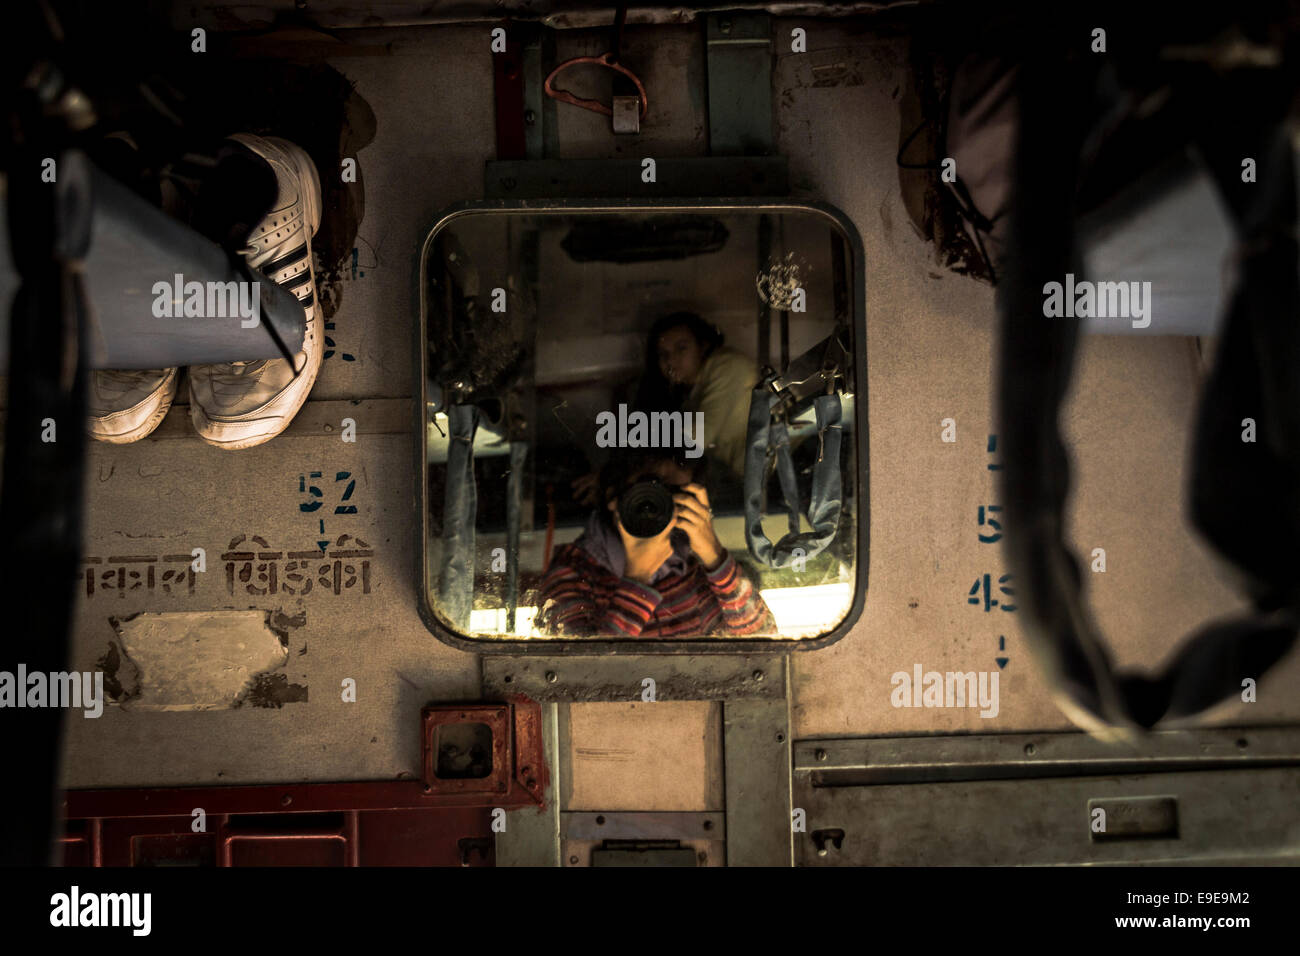 Woman taking pictures with her SLR camera in front of a mirror of a sleeper class coach in an Indian train - Stock Image